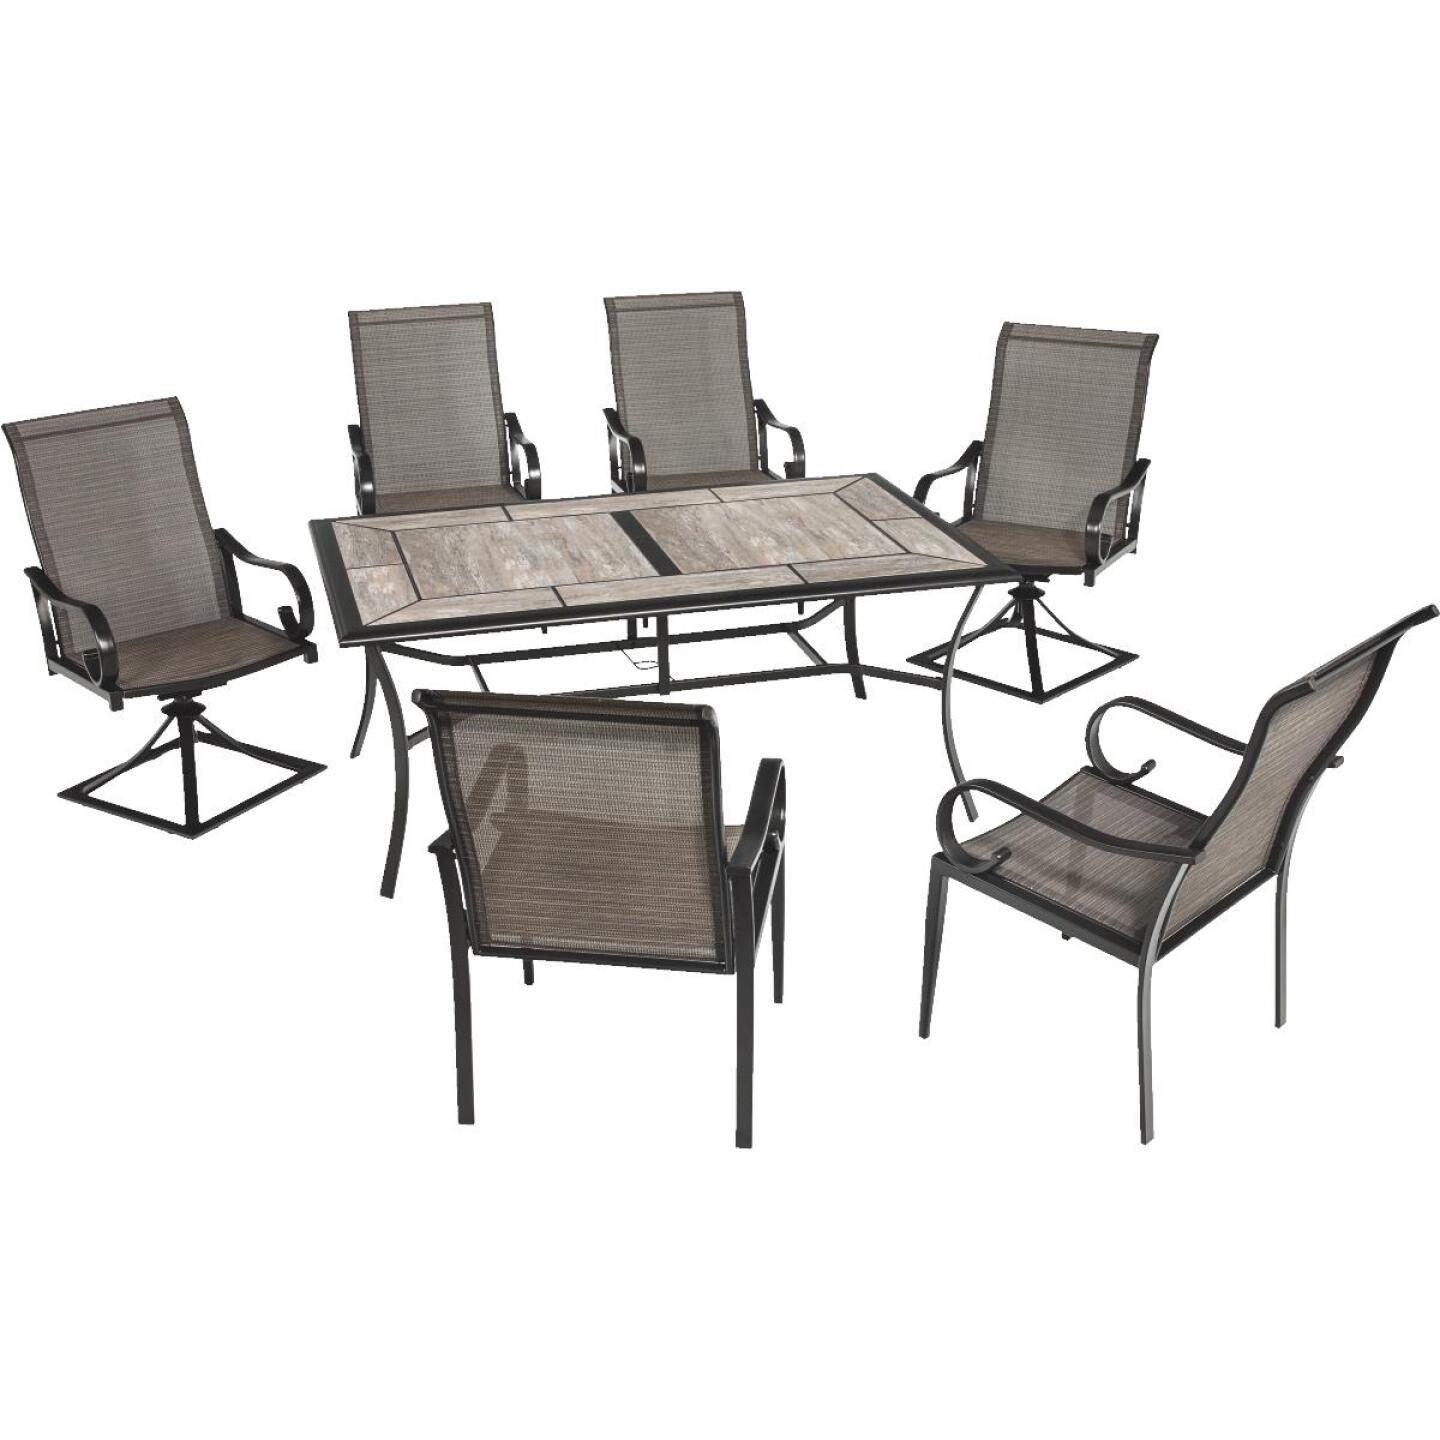 Outdoor Expressions Berkshire 7-Piece Dining Set Image 286